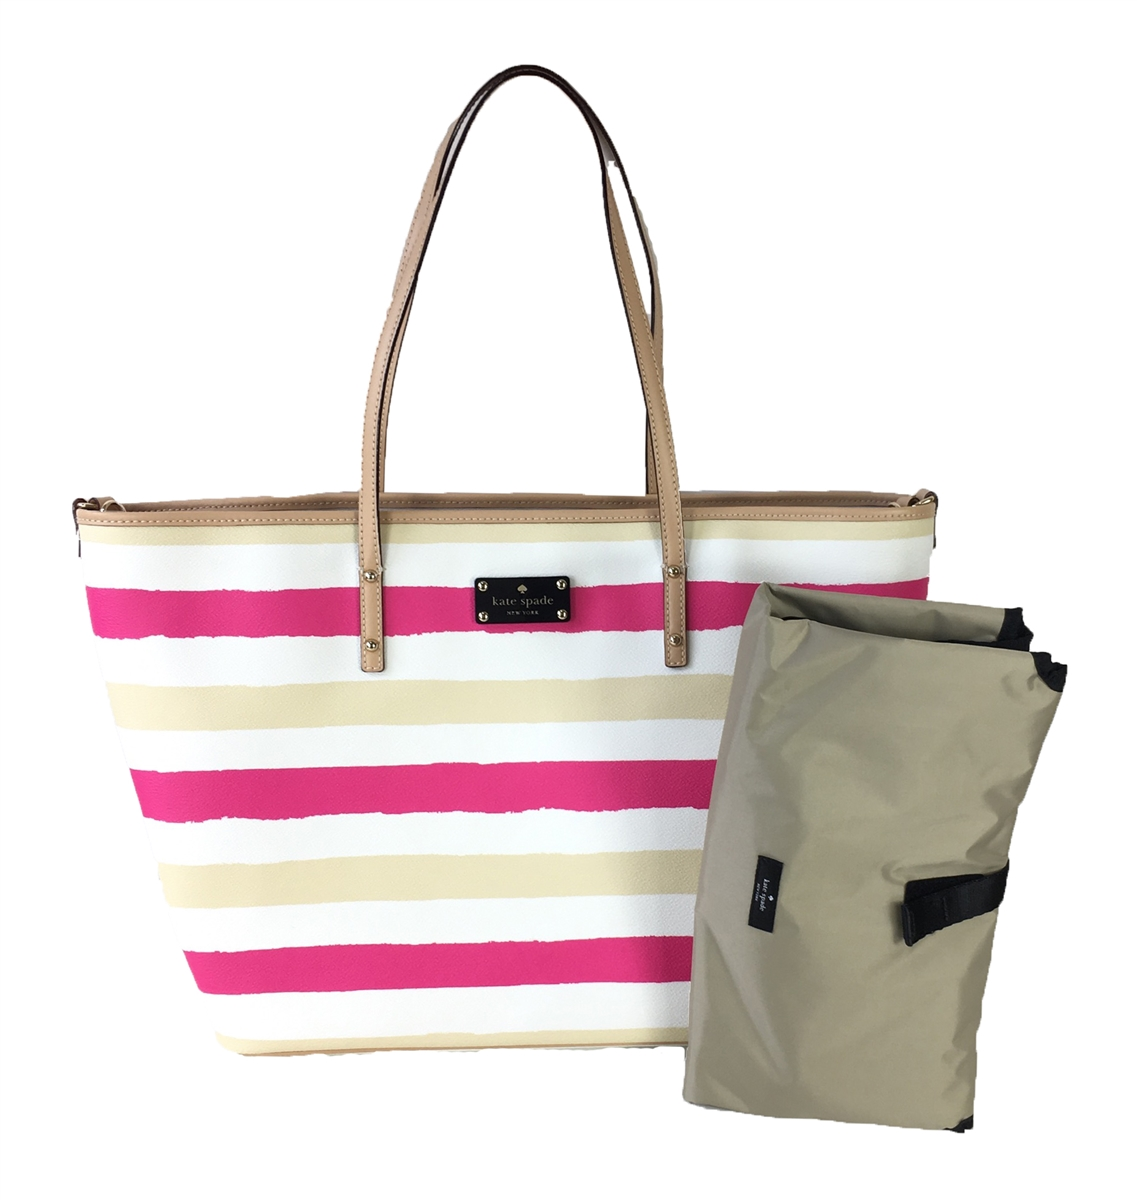 Harmony Road Bondi BagPinkcream Kate Stripes Spade Baby lFKc1J